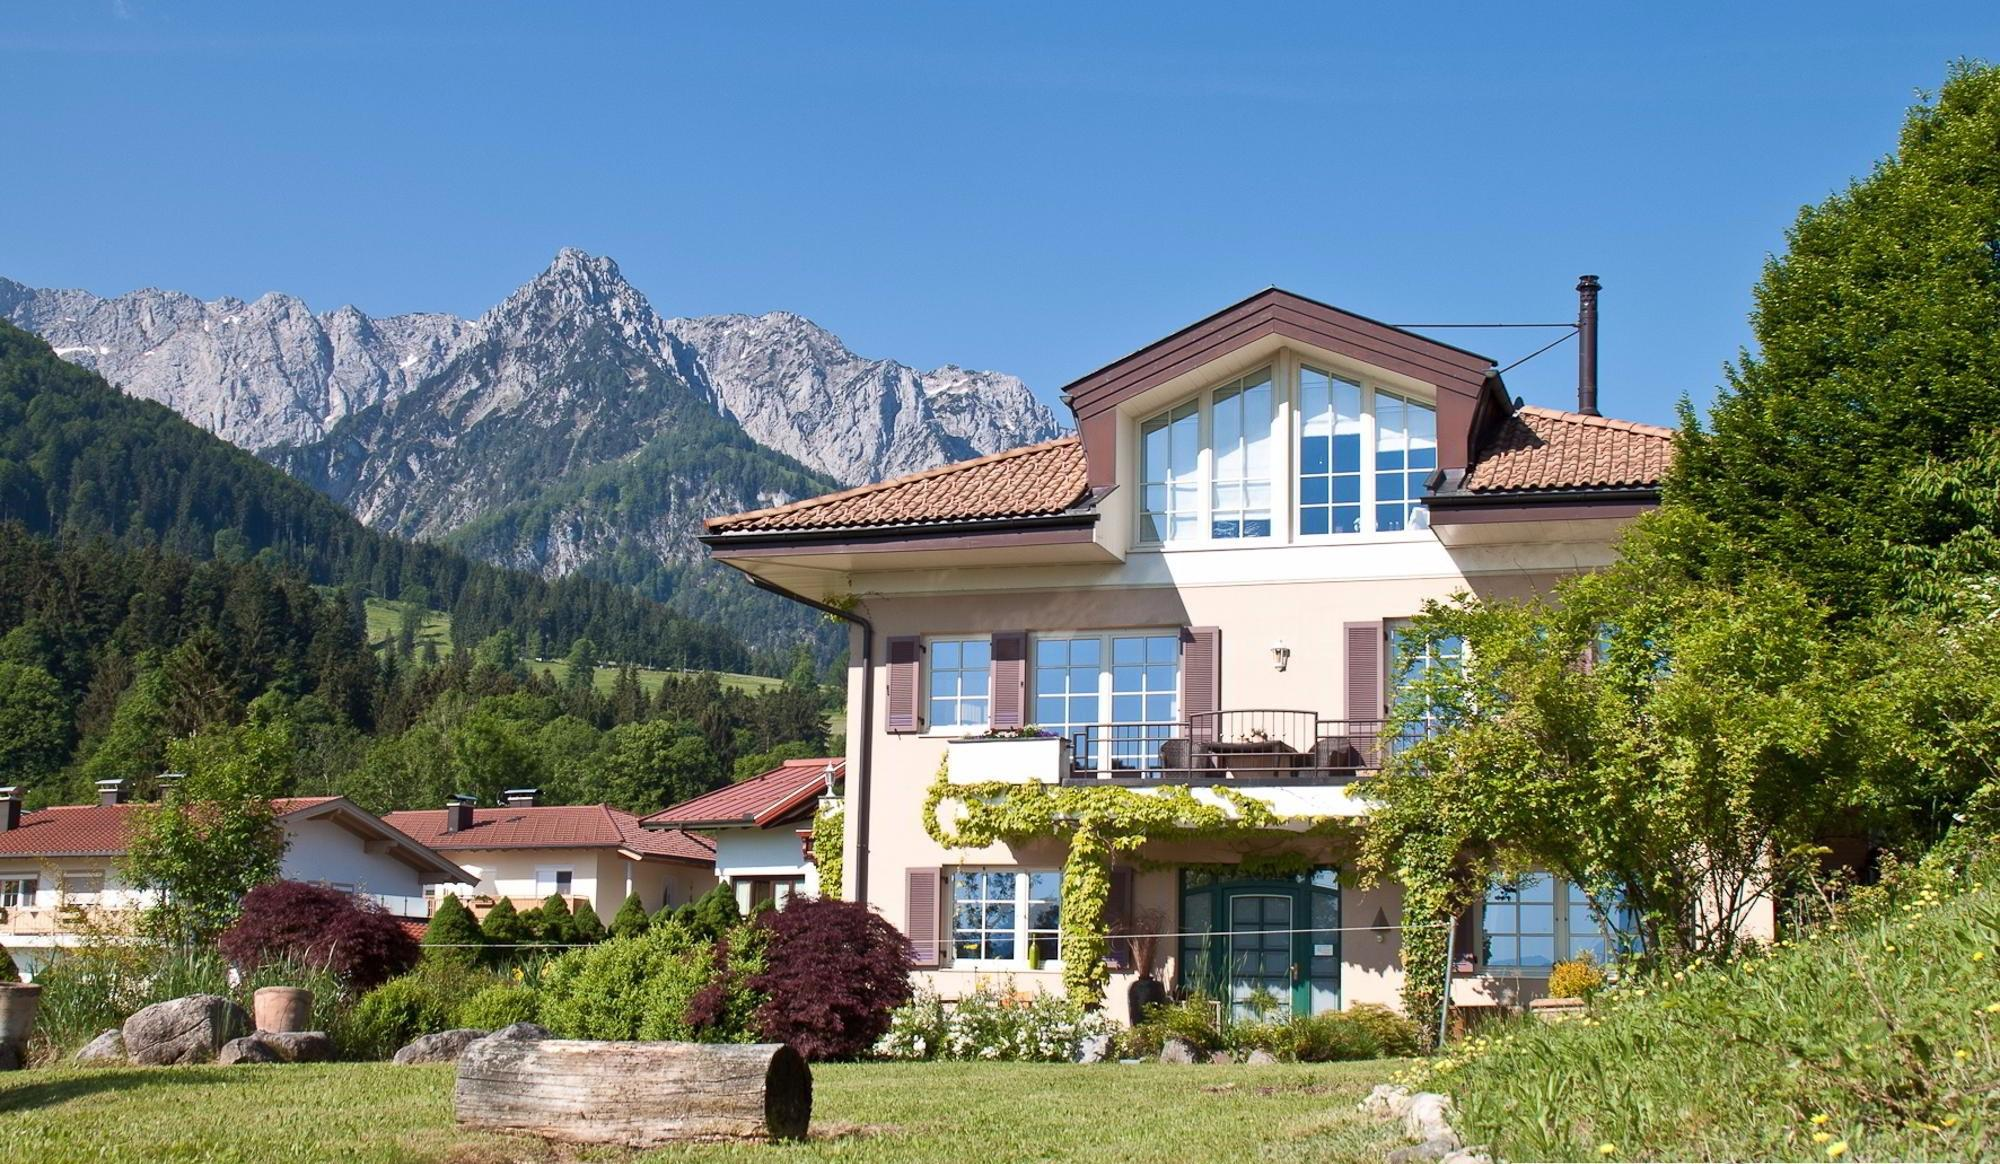 Comfortable country villa with a lake view in village of Walchsee For Sale - Walchsee